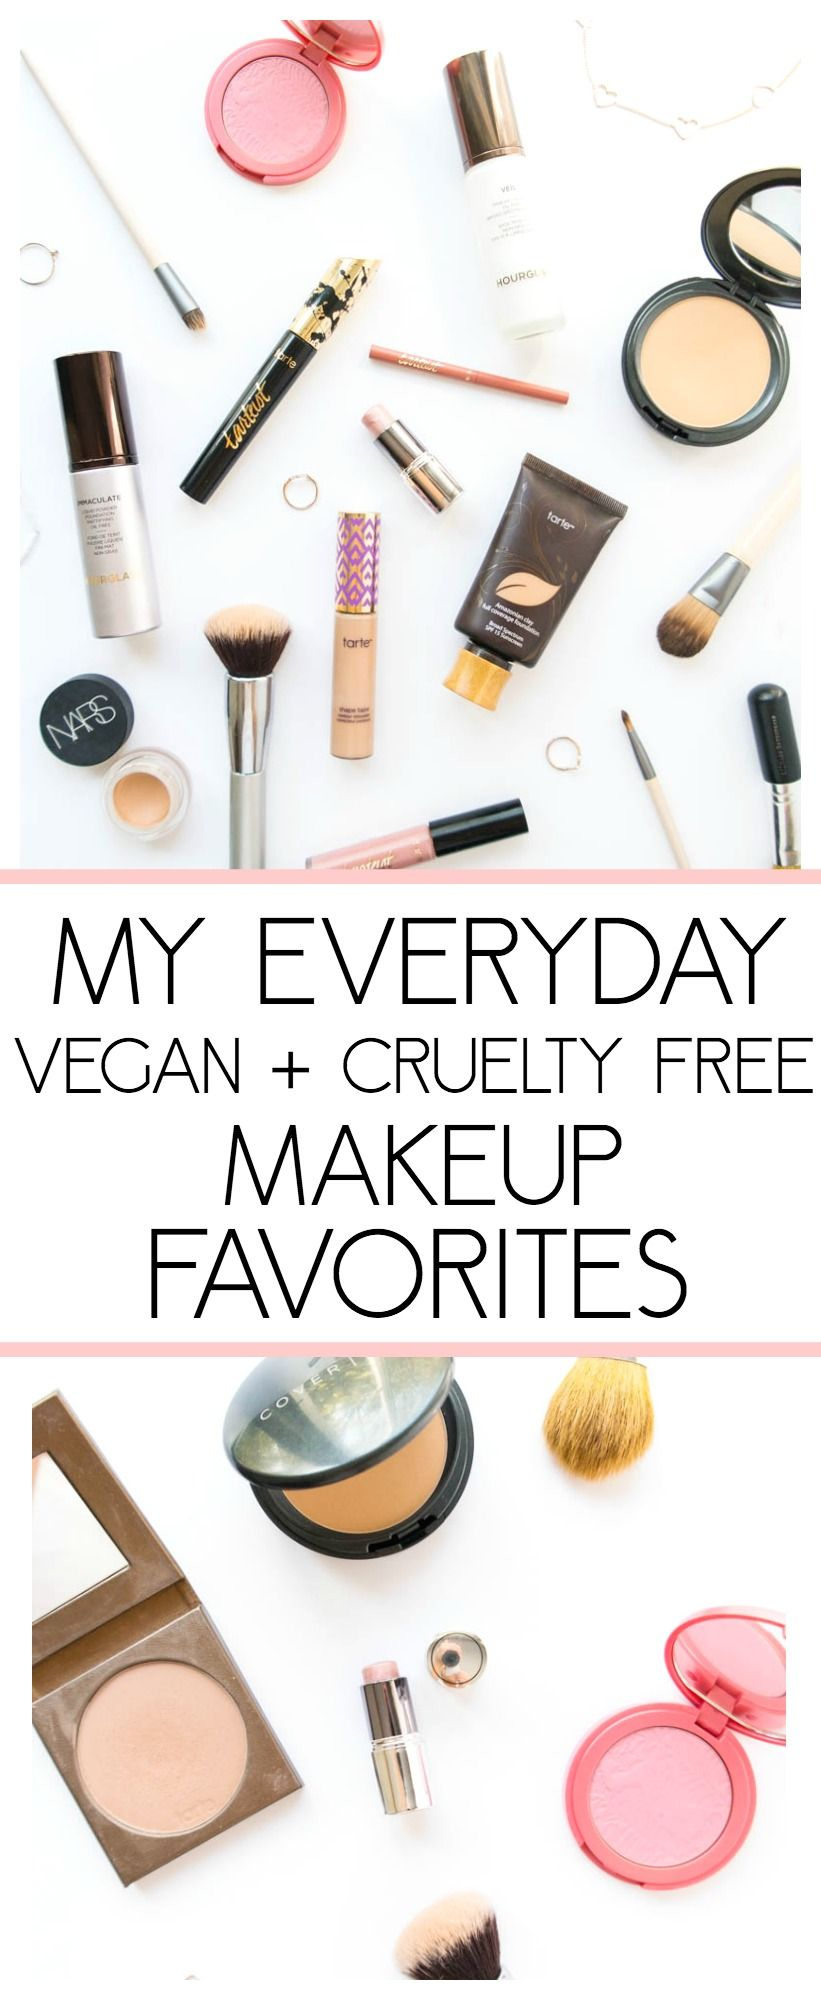 My Everyday Vegan & CrueltyFree Makeup Favorites